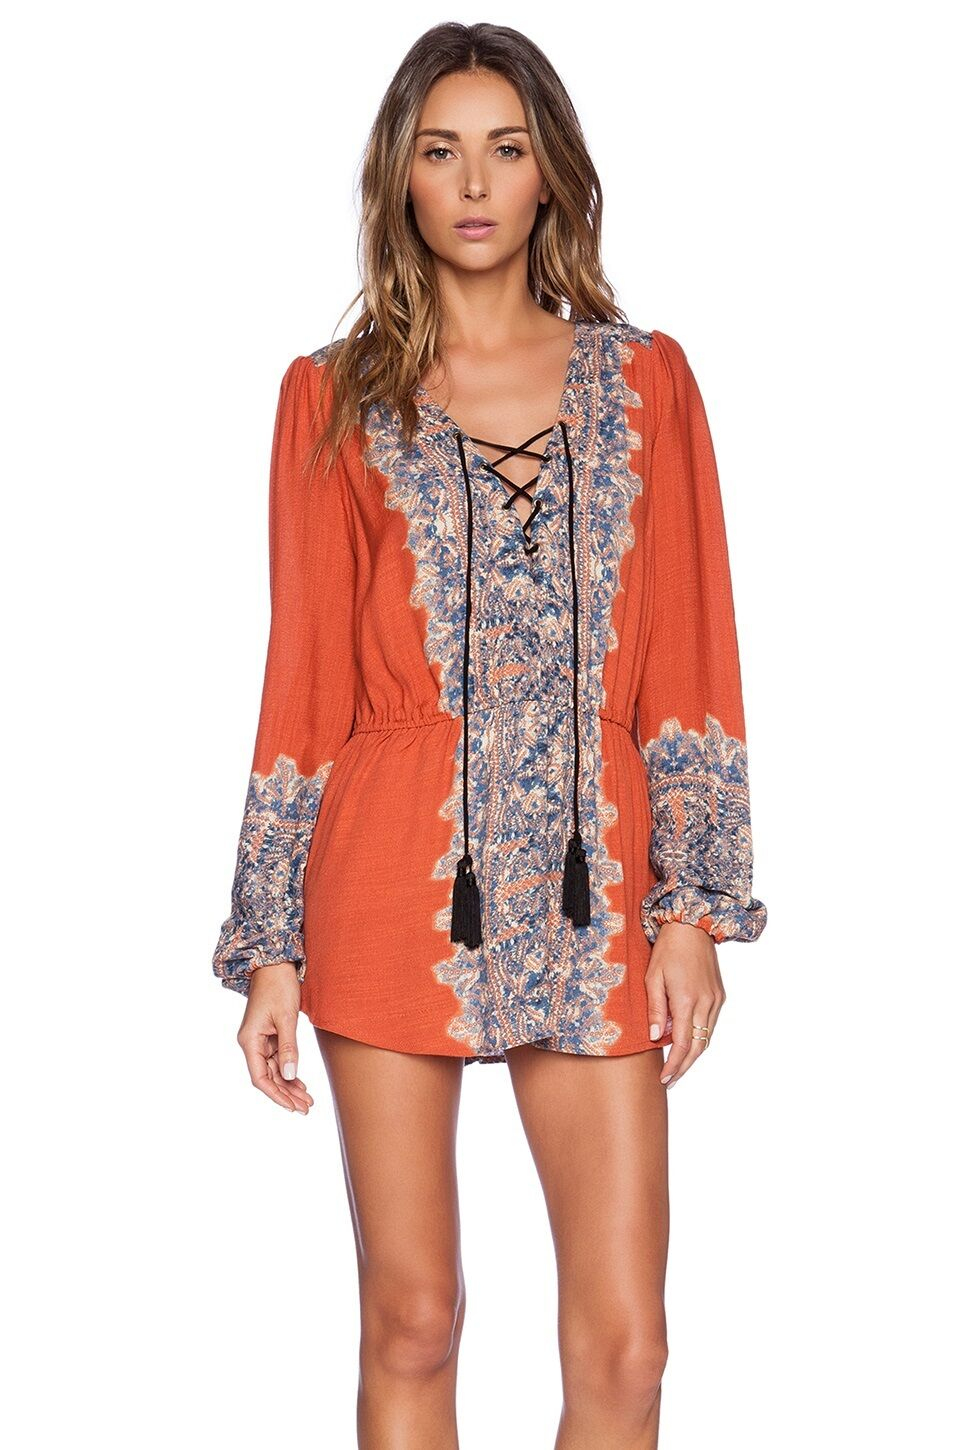 FREE PEOPLE damen Long Sleeve Wildest Moment Print Tunic Blouse Top XS S M L